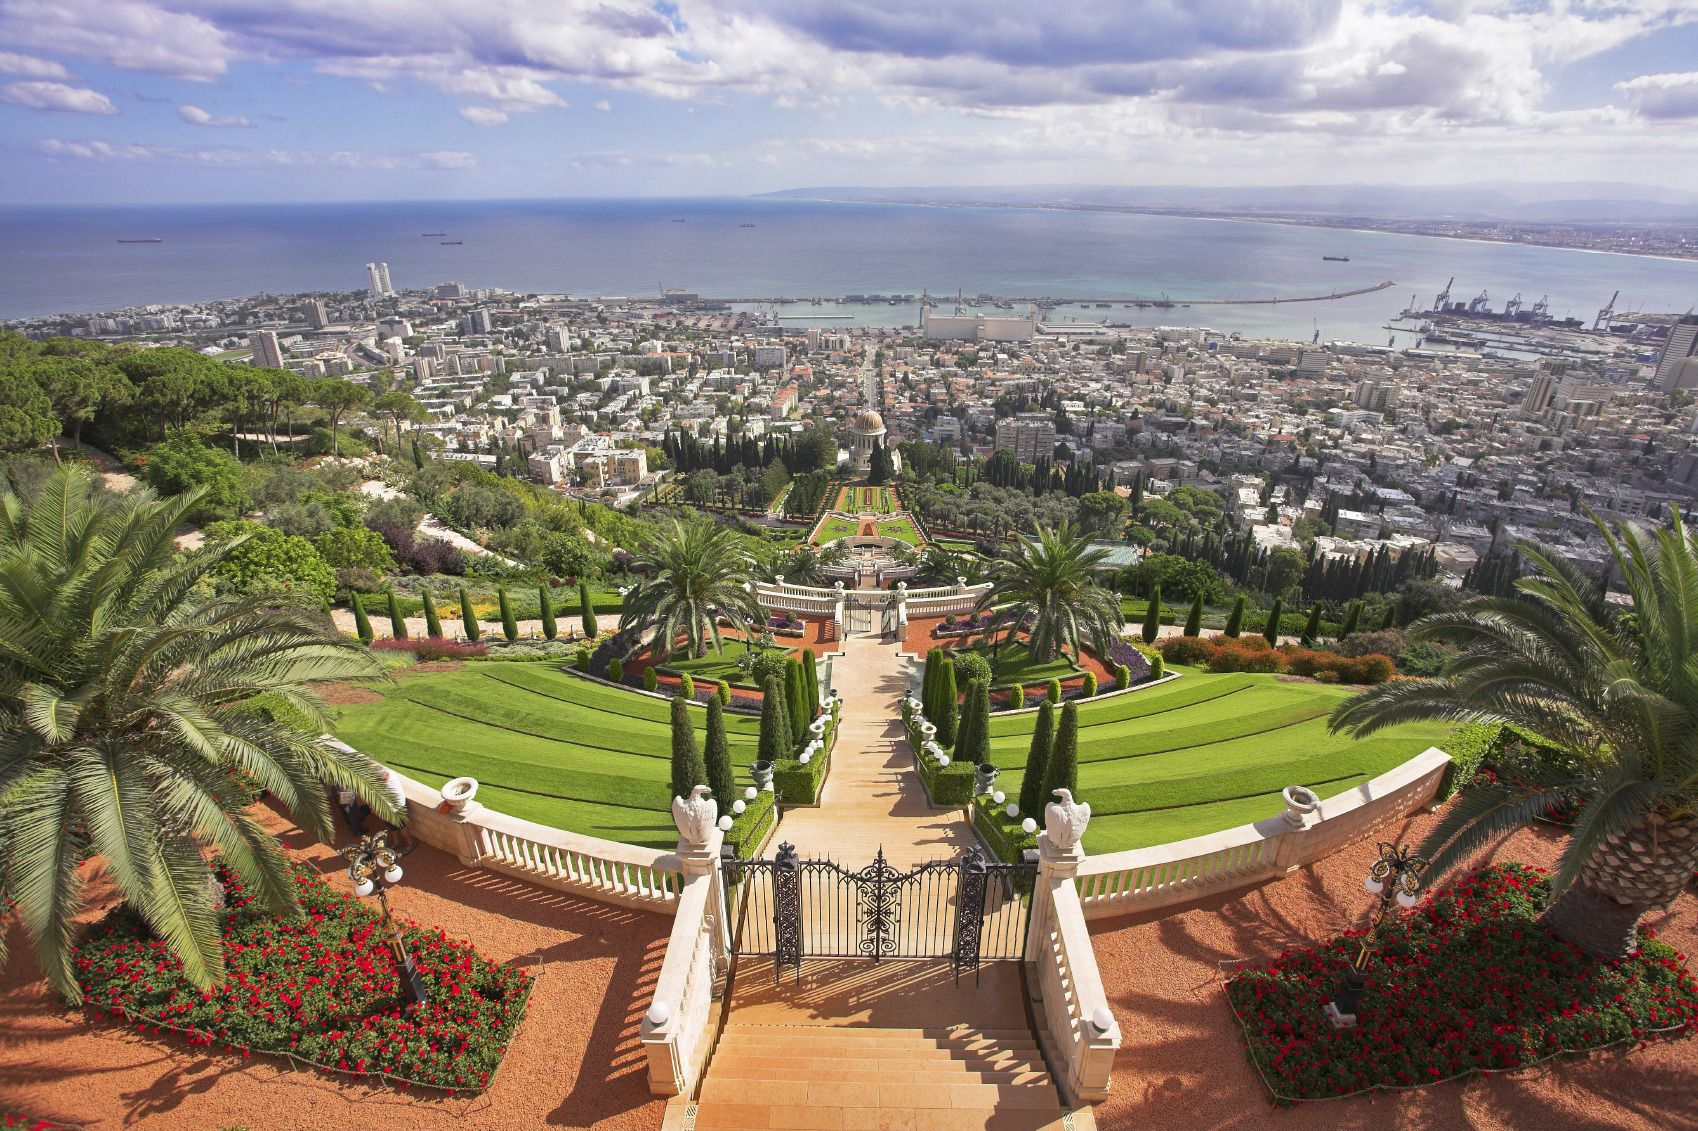 **Haifa:8* Israel's northern metropolis stretches from the Bahai Temple to the industrial port and has Jewish, Muslim and Christian populations.